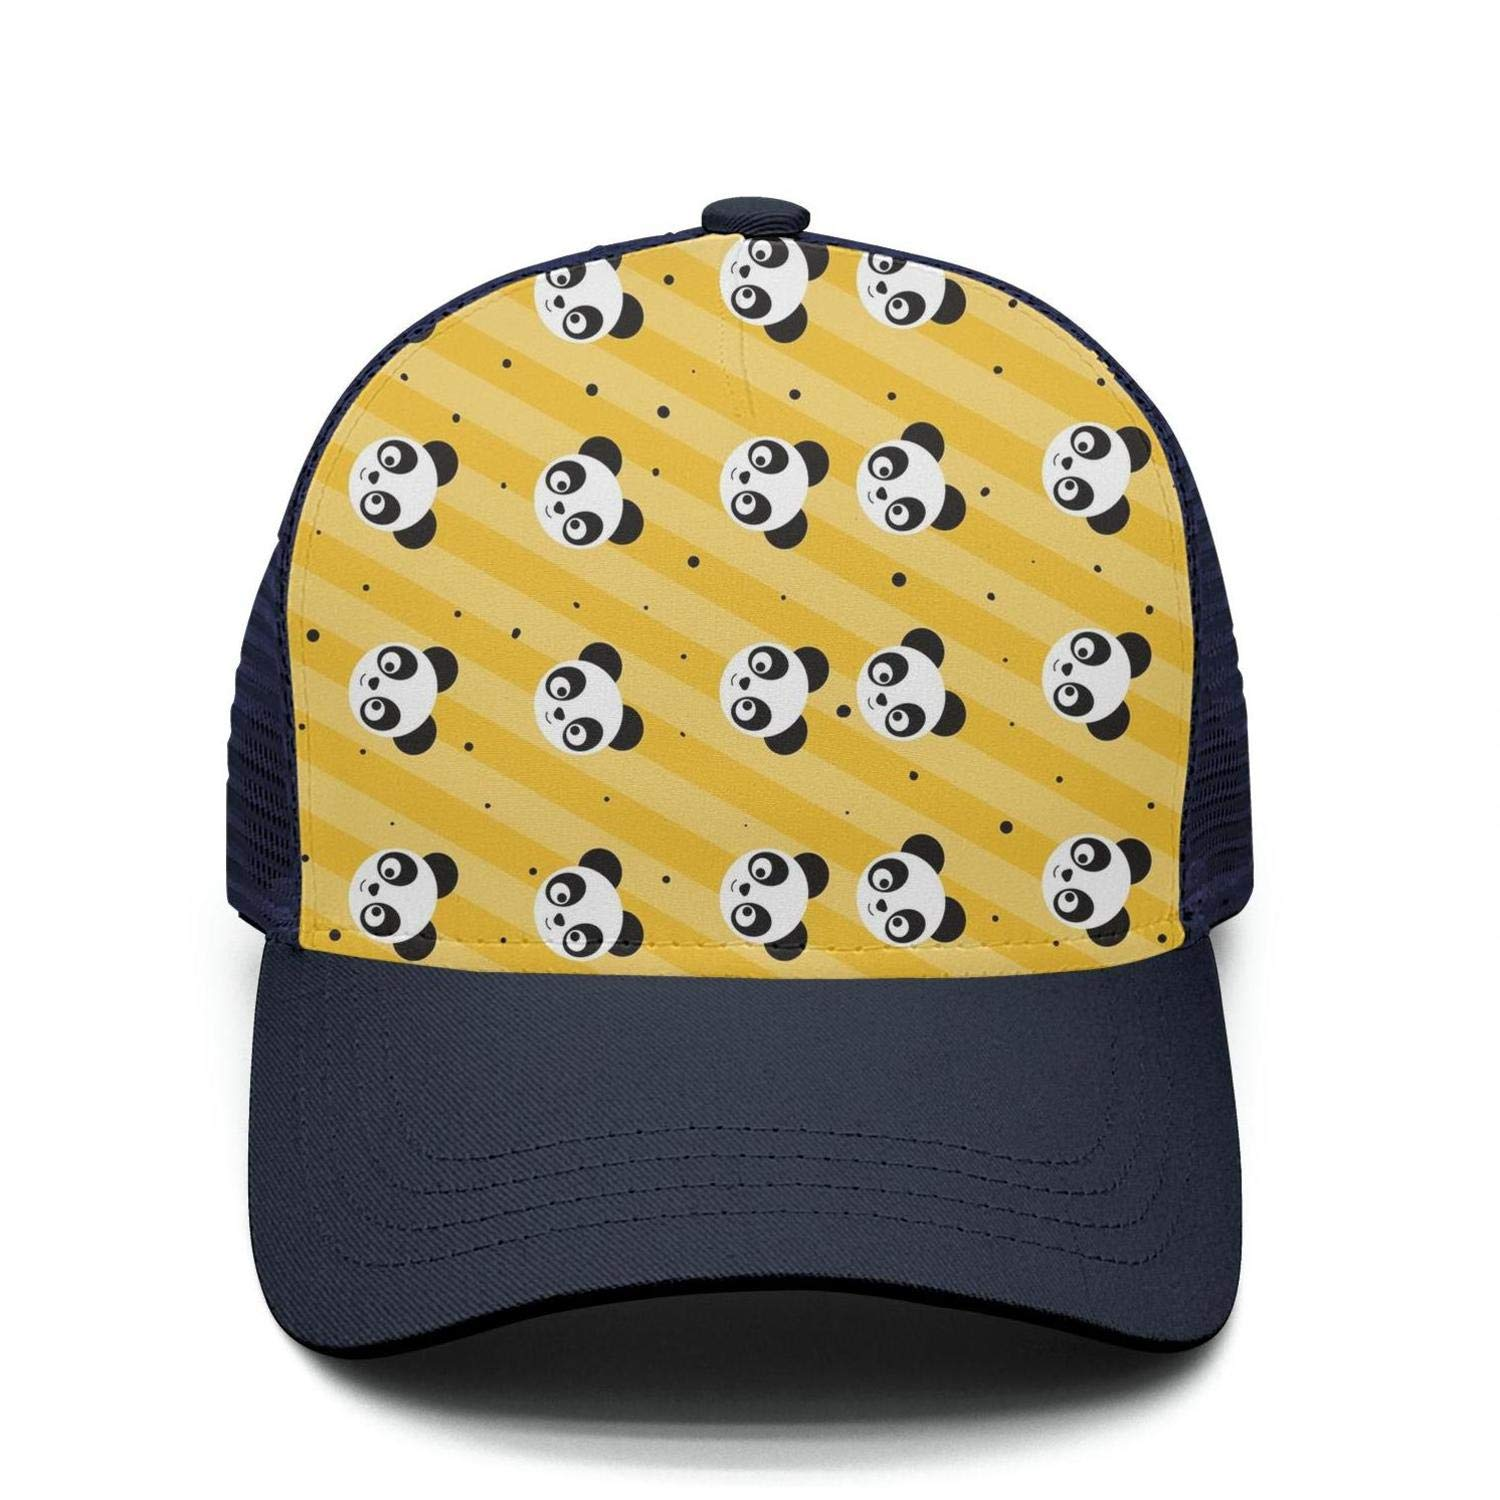 Unisex Adjustable Meshback Sandwich Hats Love Corgi Butt Dog Lover Snapback Trucker Caps